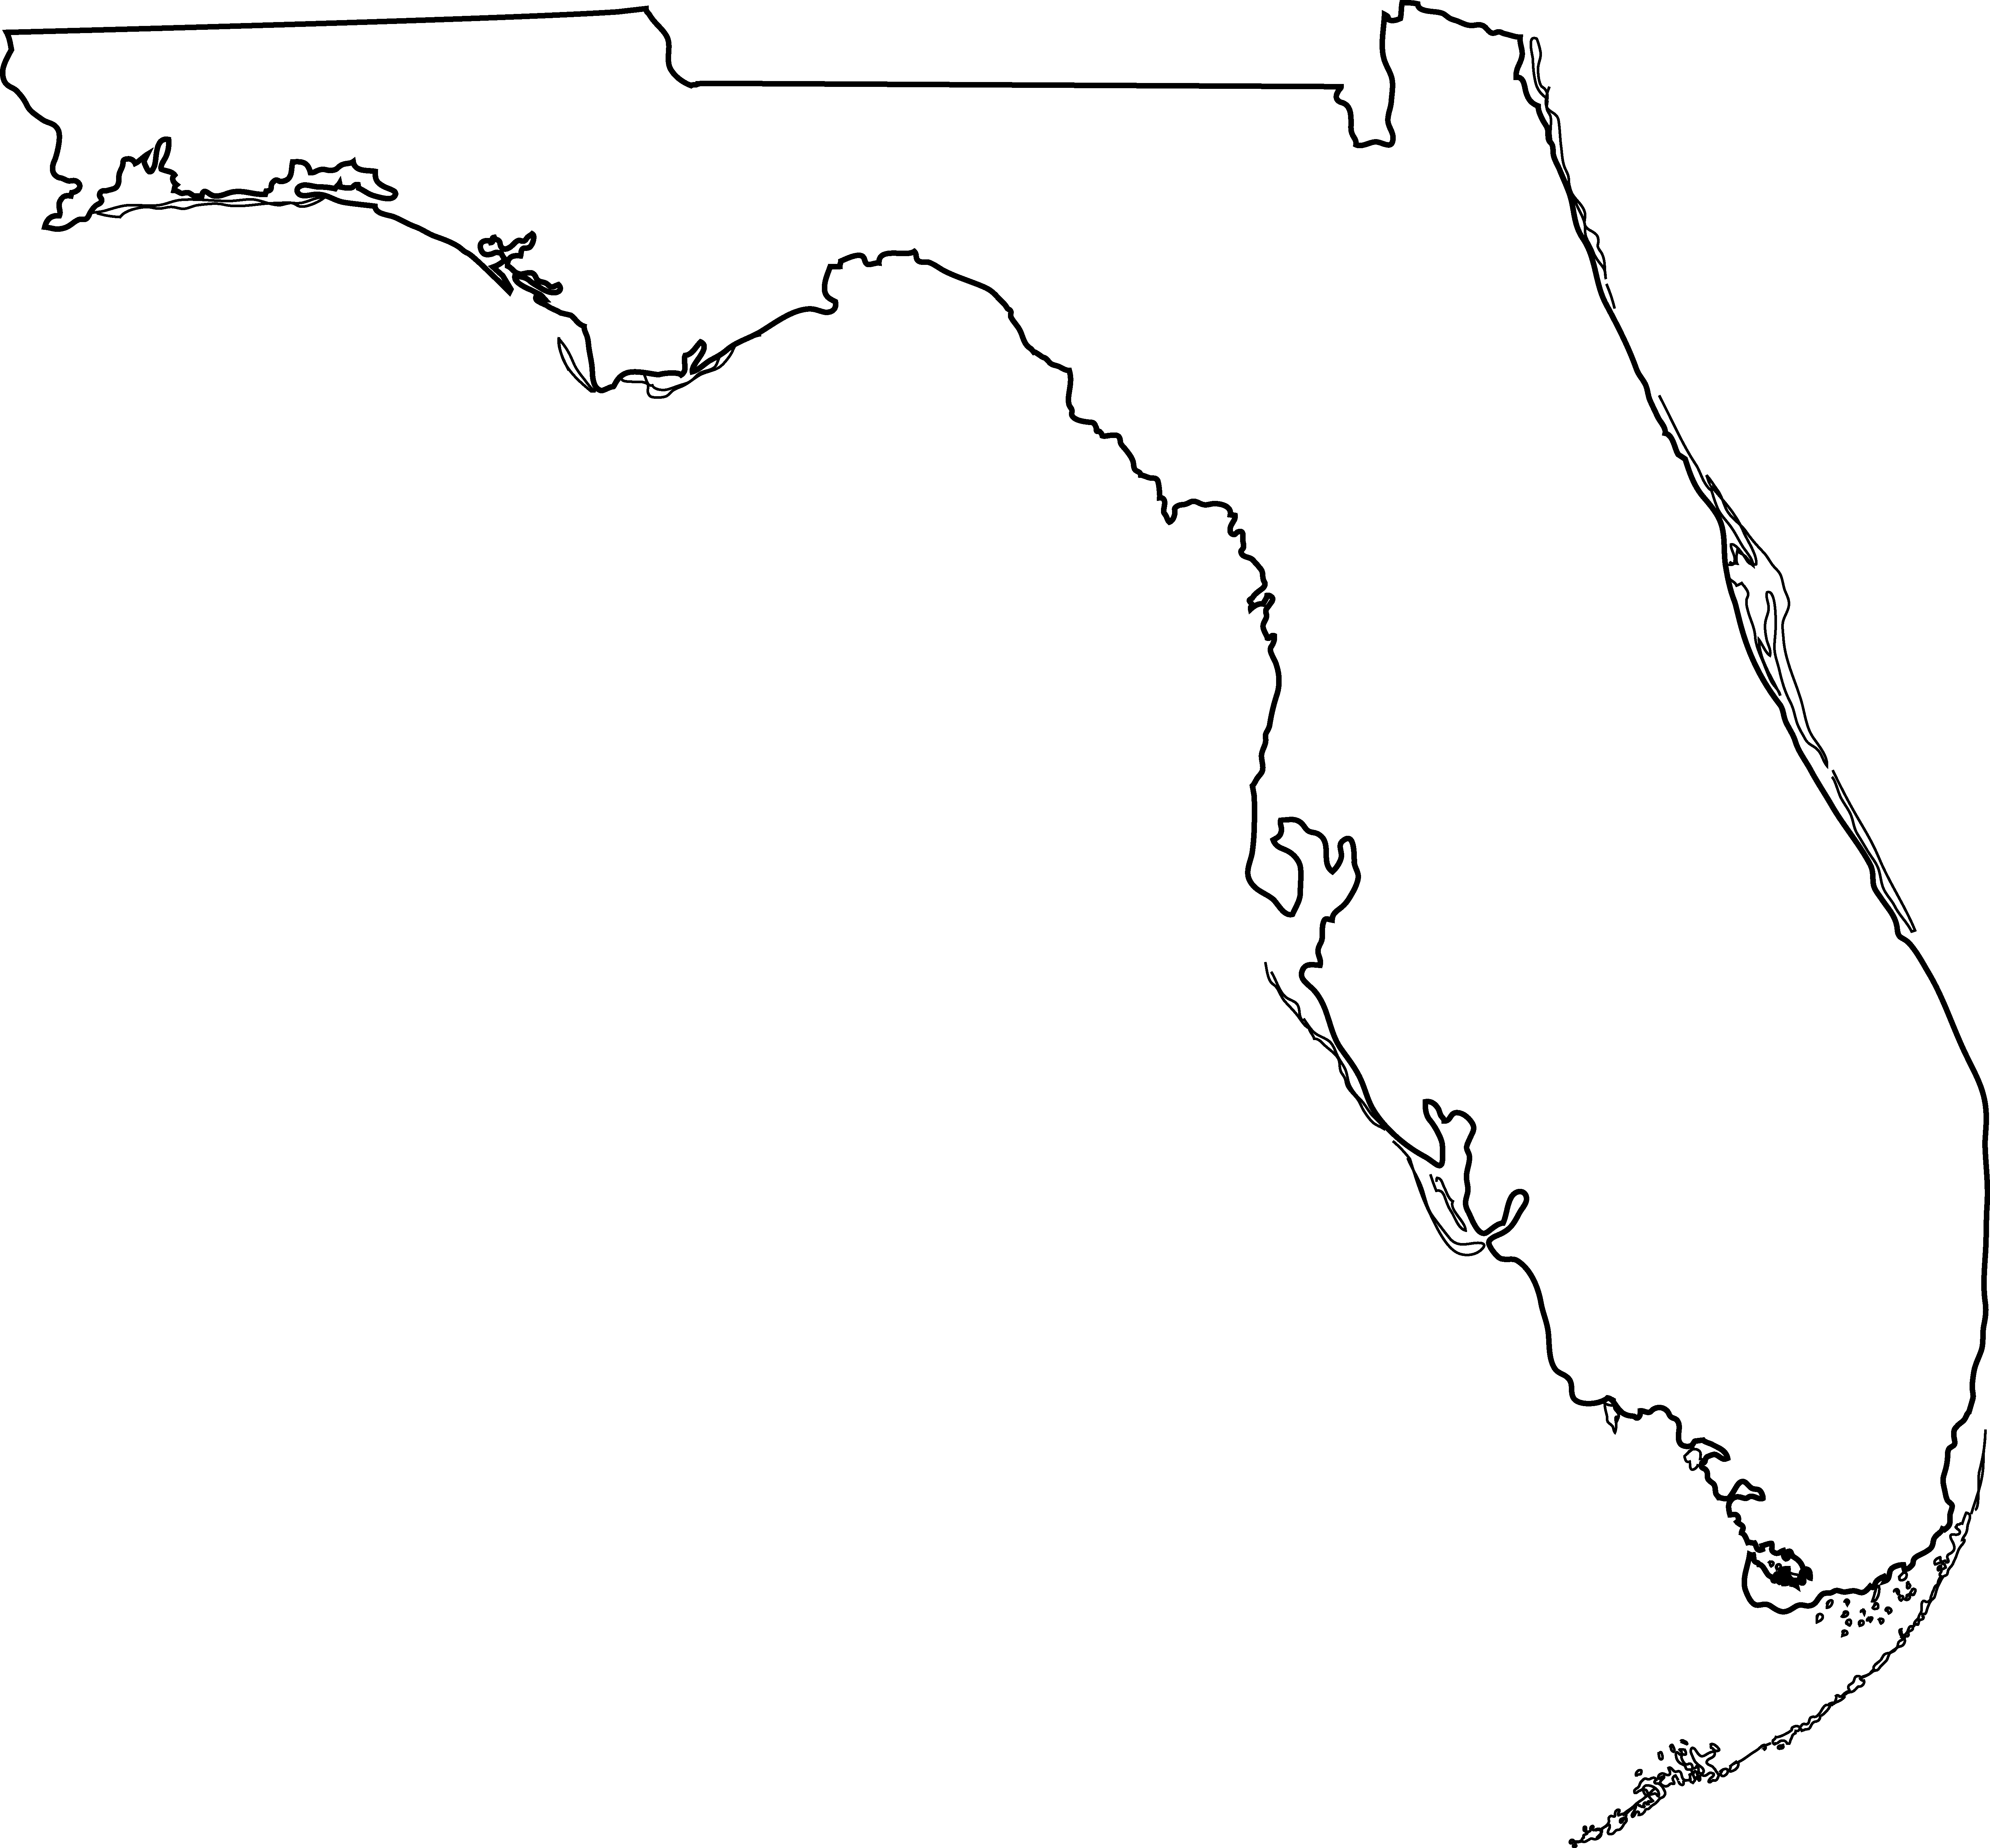 Florida state map clipart clipart royalty free Usa map state of florida clipart - ClipartFest clipart royalty free